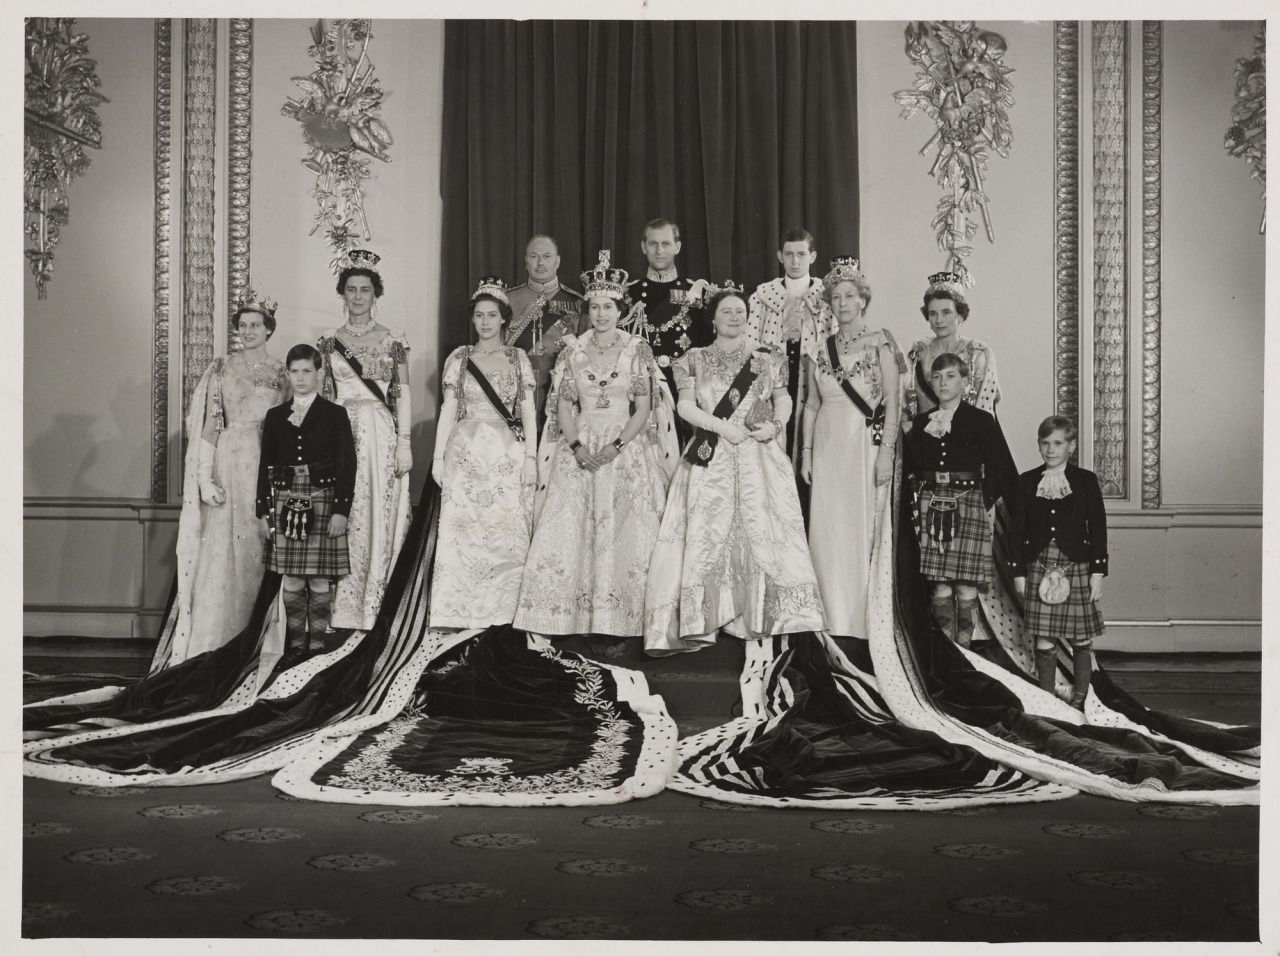 The British royal family at Queen Elizabeth II's coronation. 1953. Group includes: Princess Alexandra of Kent, Prince Michael of Kent, Princess Marina (Duchess of Kent), Prince Henry (Duke of Gloucester), Princess Margaret, Queen Elizabeth II, Prince Philip, Queen Elizabeth the Queen Mother, Prince Edward of Kent, Princess Mary (Countess of Harewood), Prince William of Gloucester, Prince Richard of Gloucester and Princess Alice (Duchess of Gloucester).